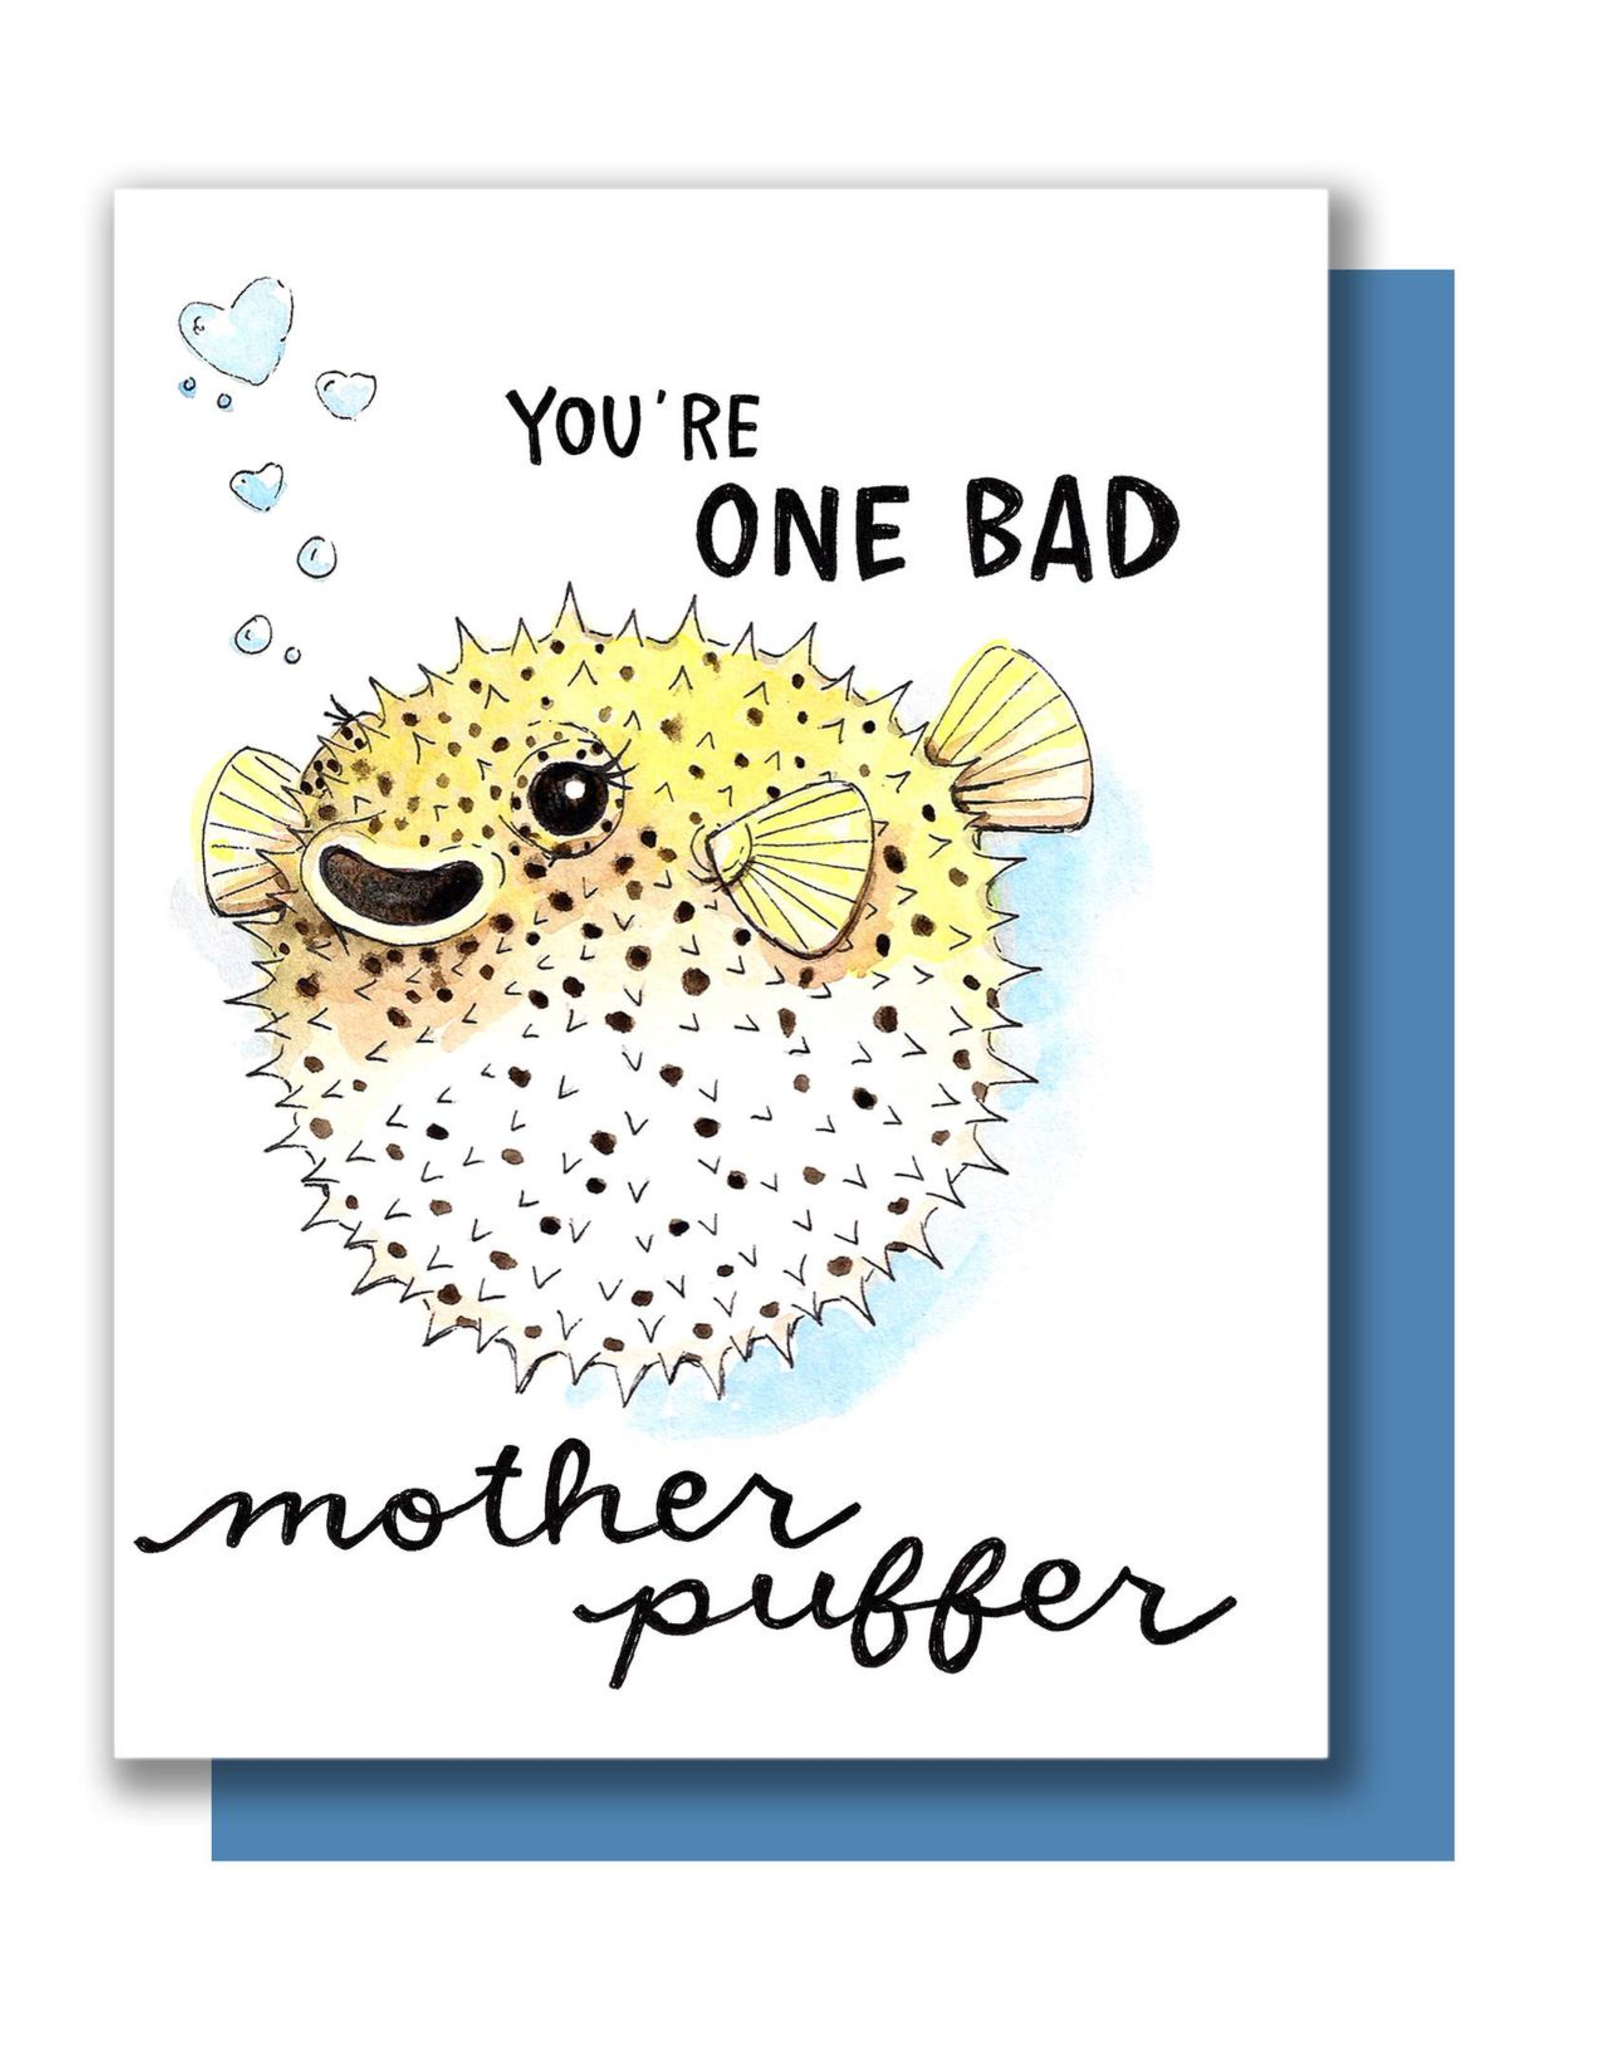 One Bad Mother Puffer Greeting Card